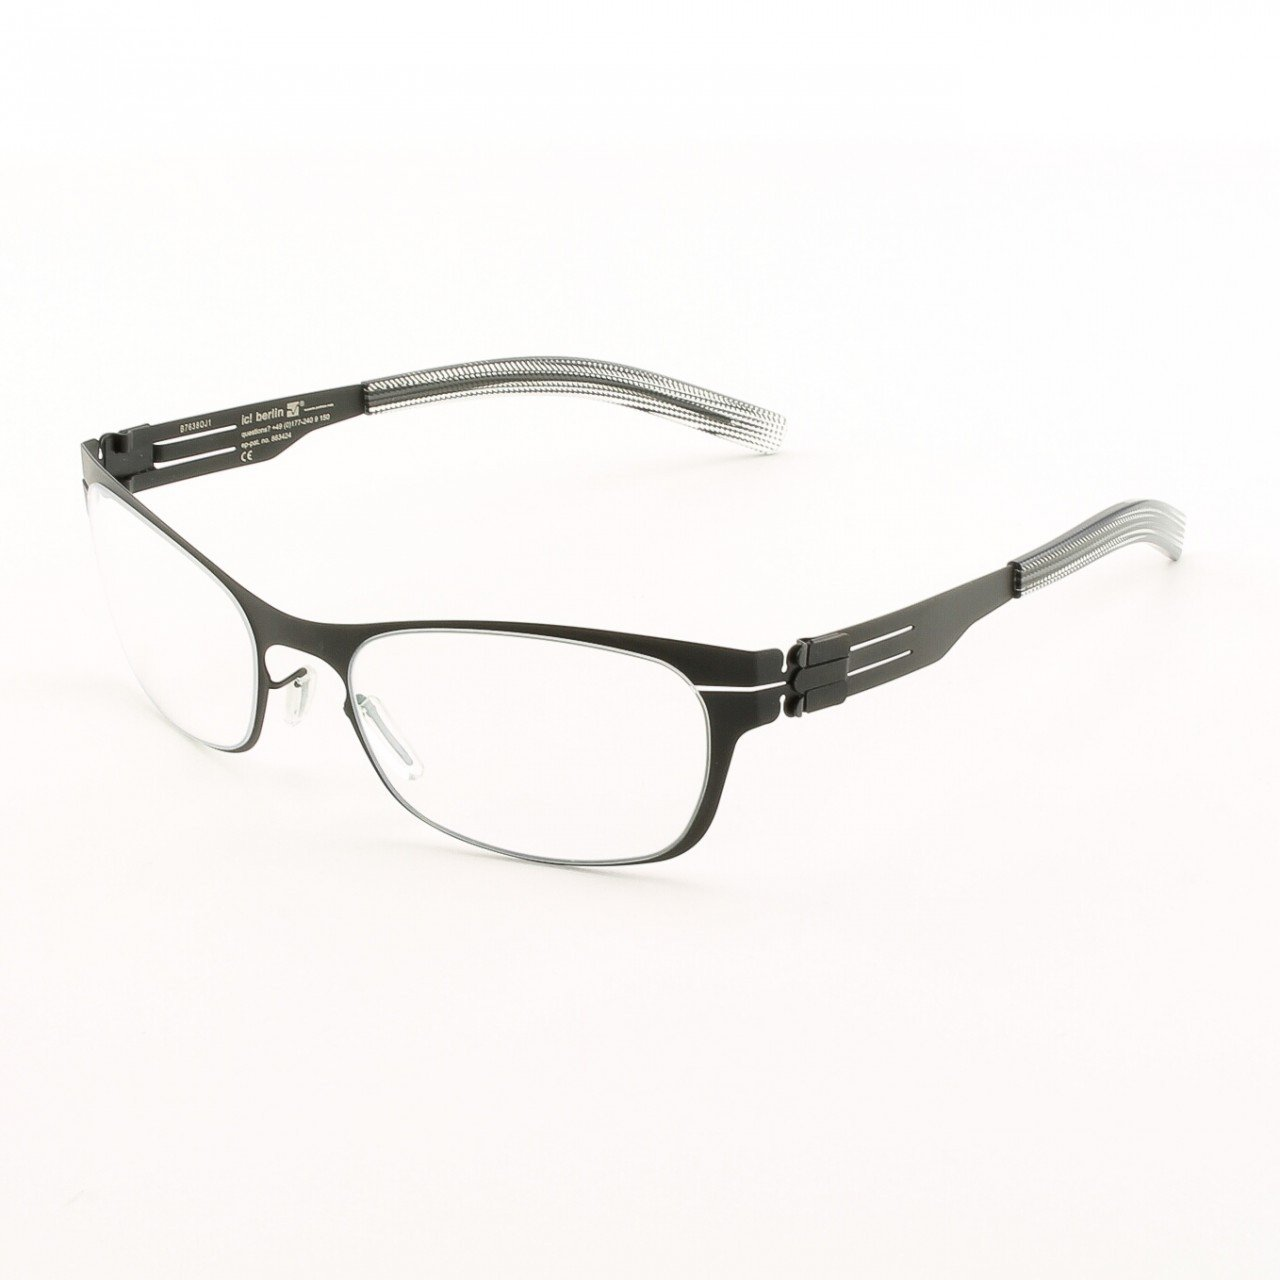 ic! Berlin Charmante Eyeglasses Col. Black with Clear Lenses